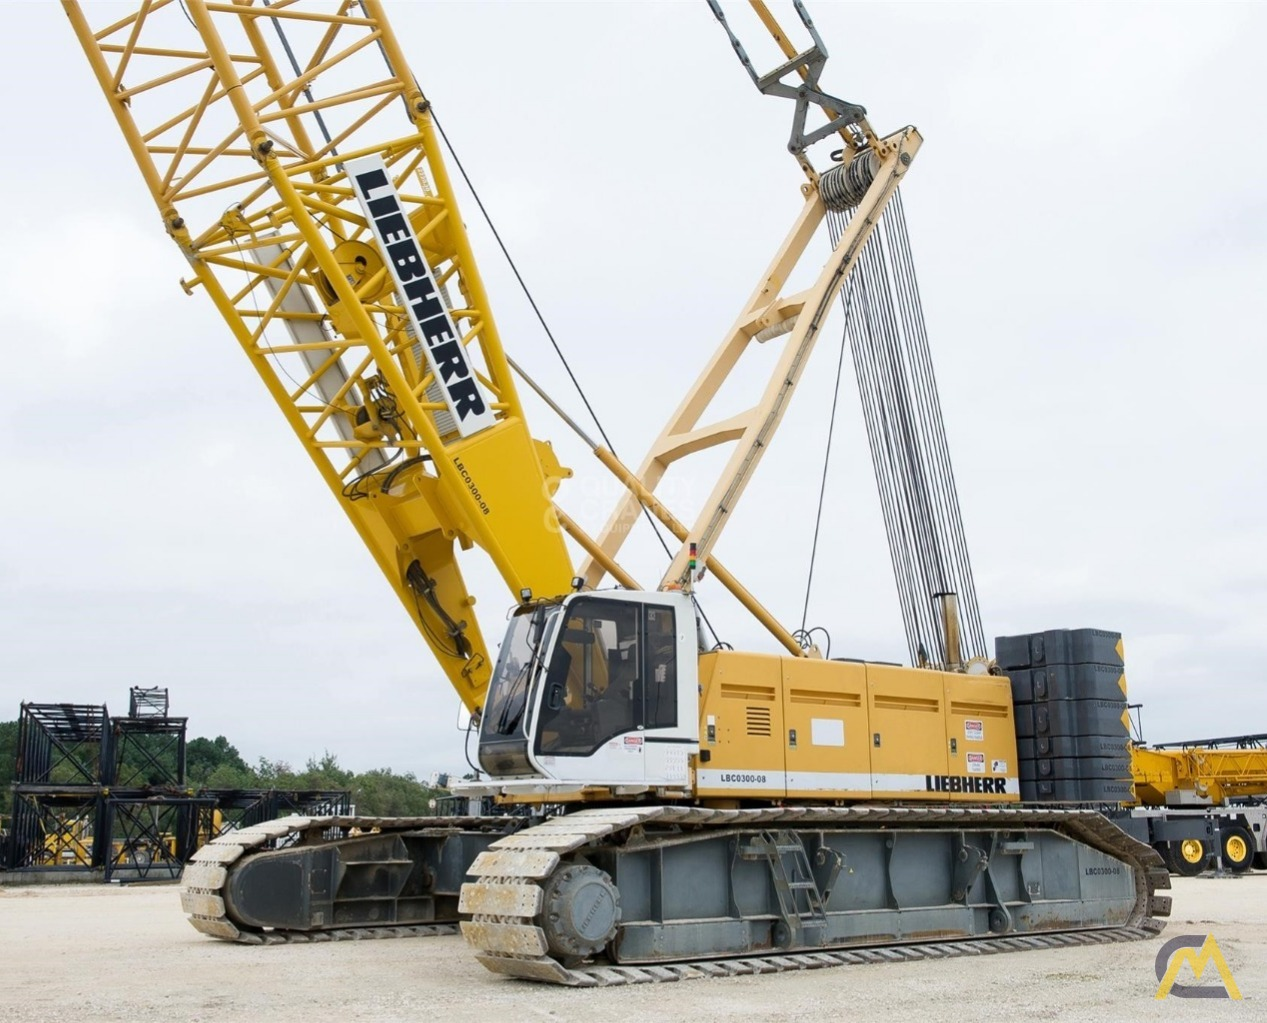 Liebherr LR 1280 300-Ton Lattice Boom Crawler Crane 0